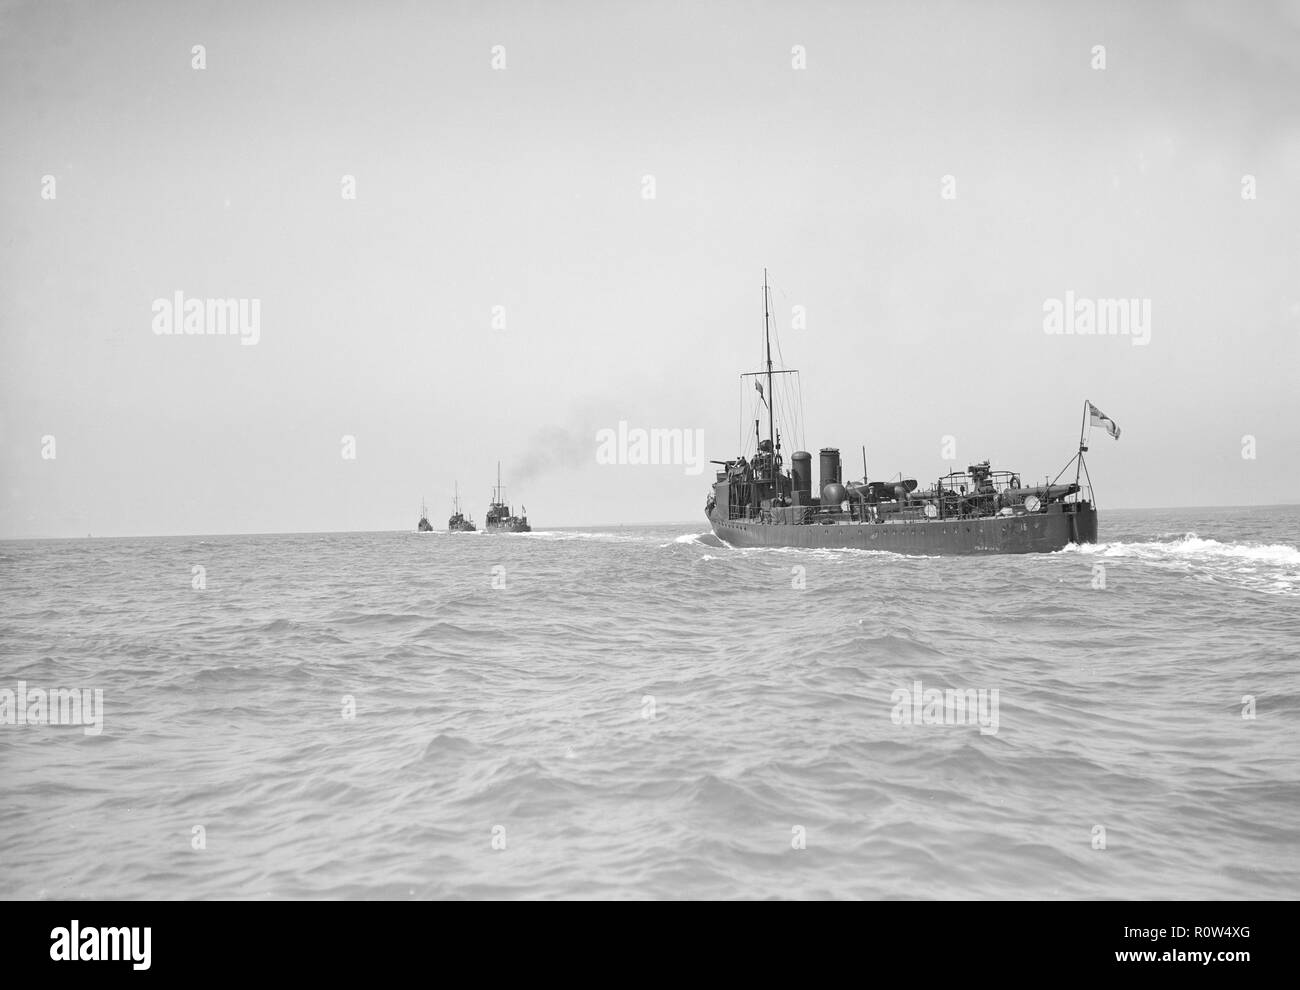 Torpedo Boat Destroyer Black and White Stock Photos & Images